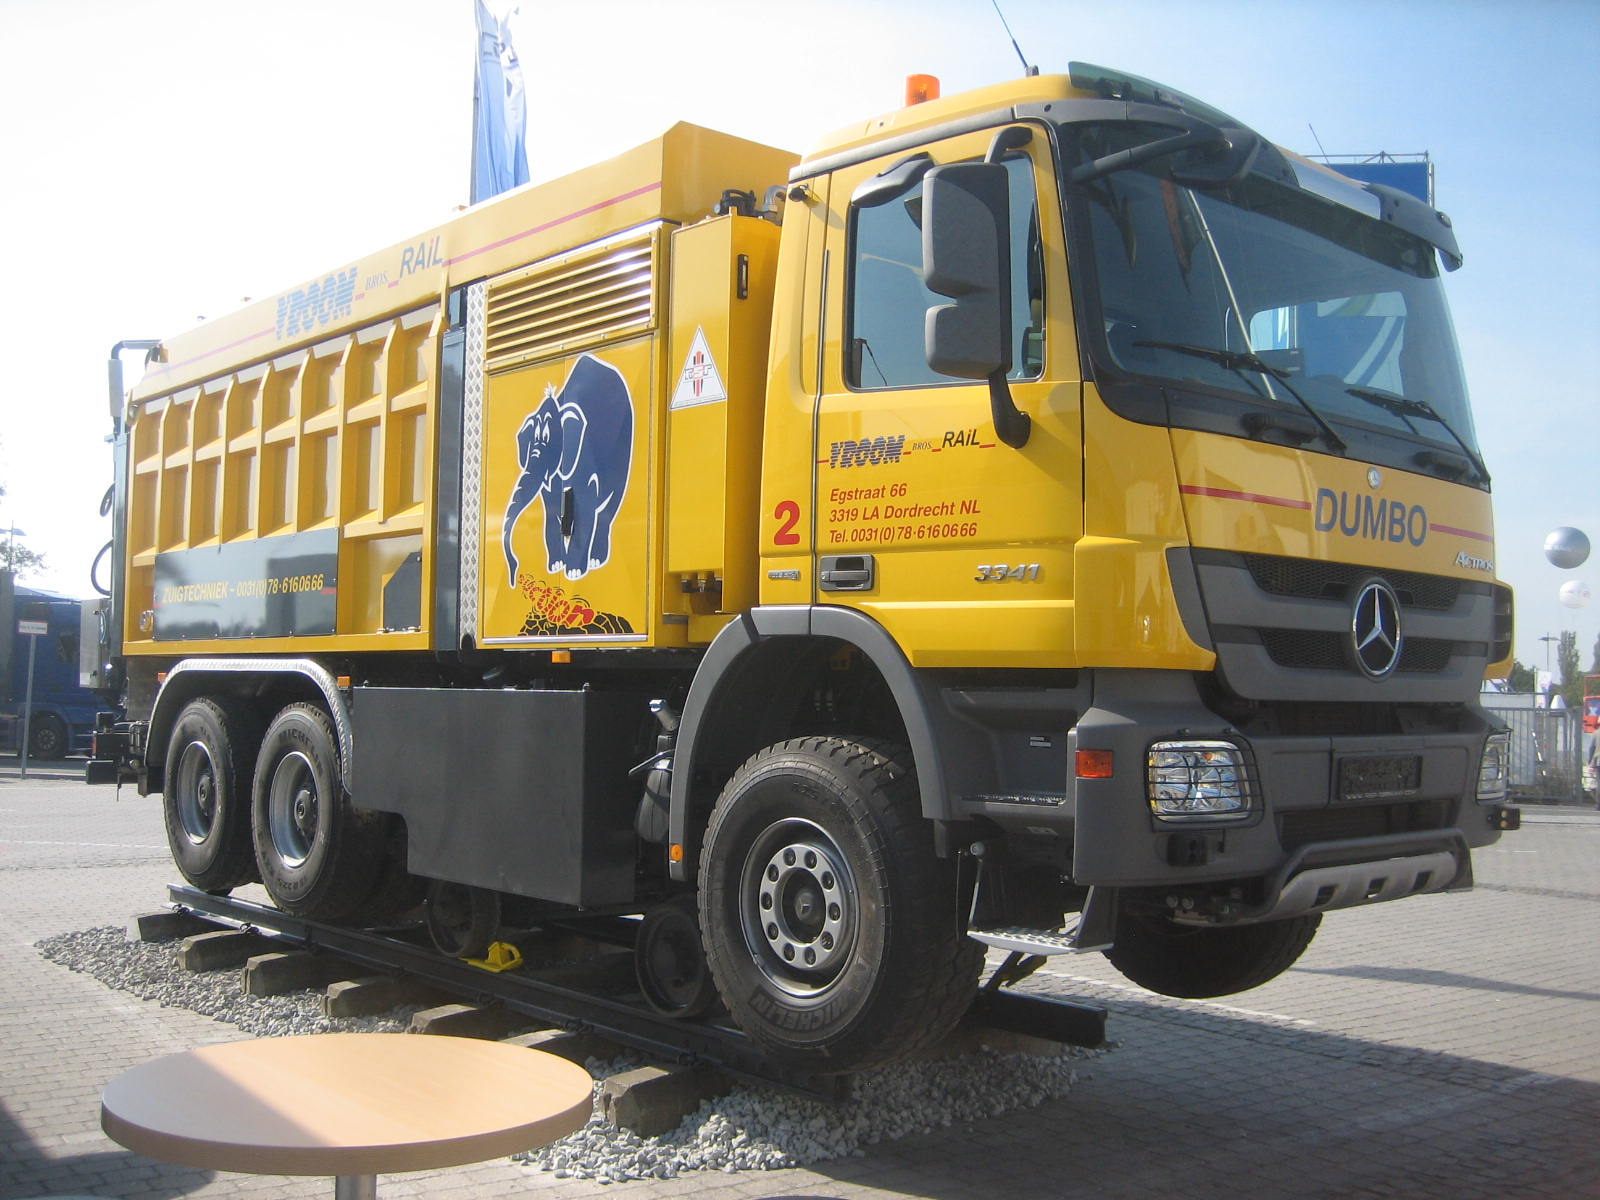 RSP-Staubsauger#bb100924 Innotrans 072 MB  Actros 3341.jpg